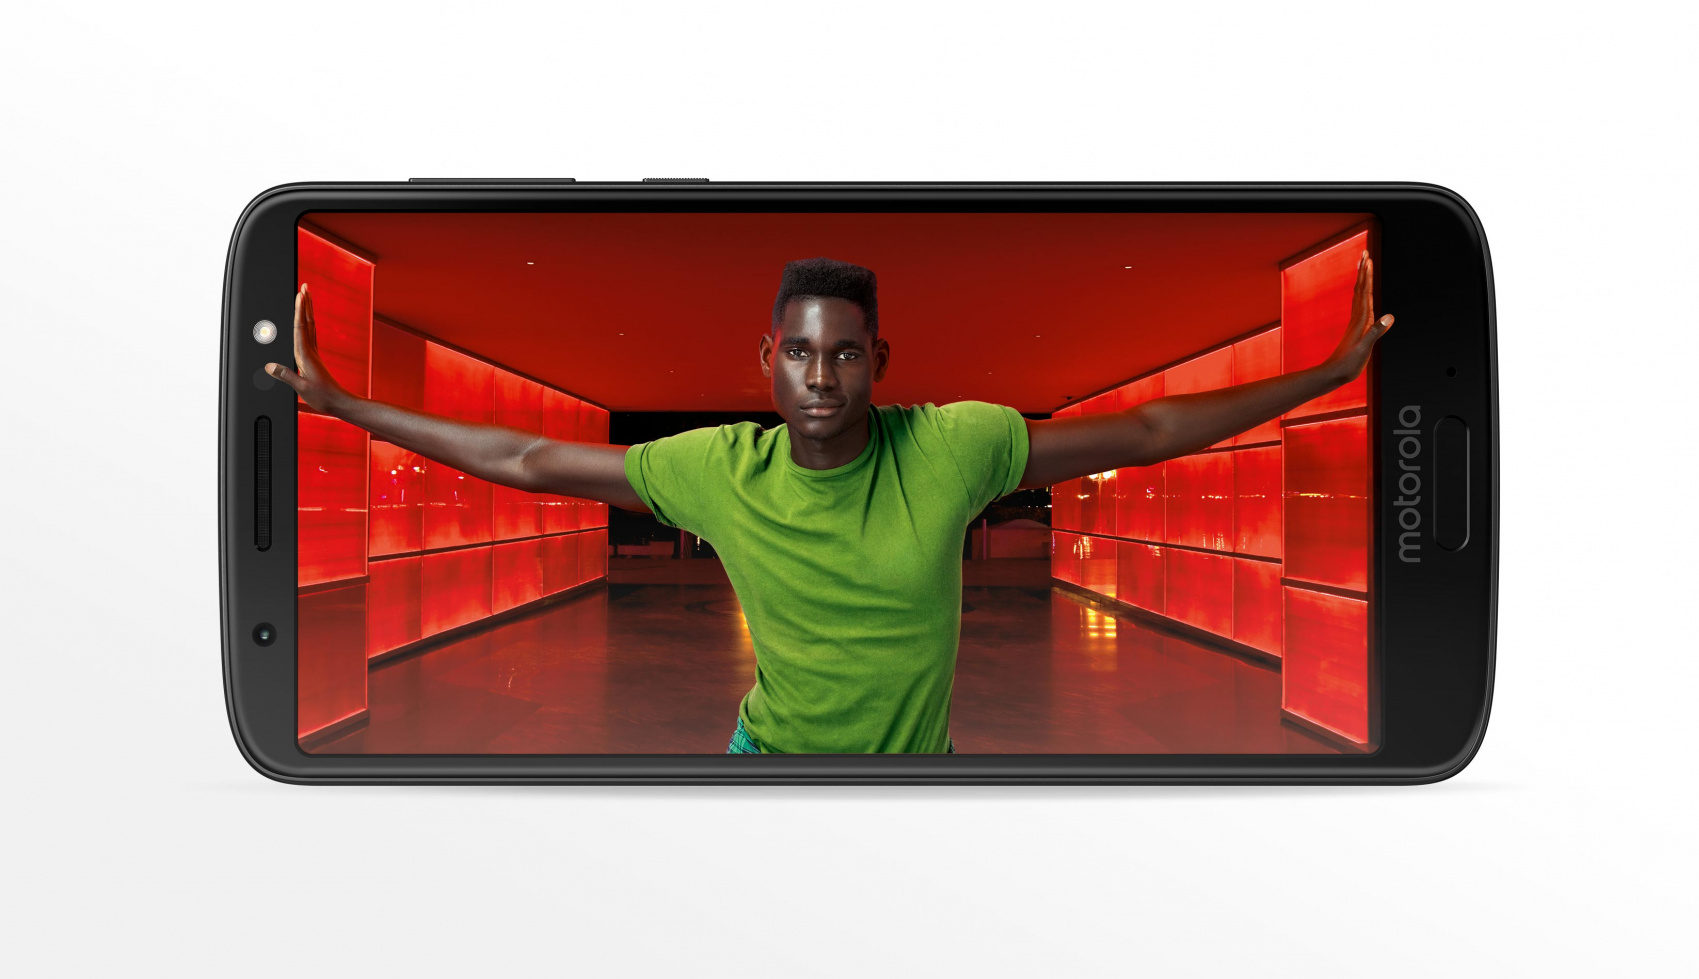 64GB Moto G6 at all-time low price of $161 ($39 off)